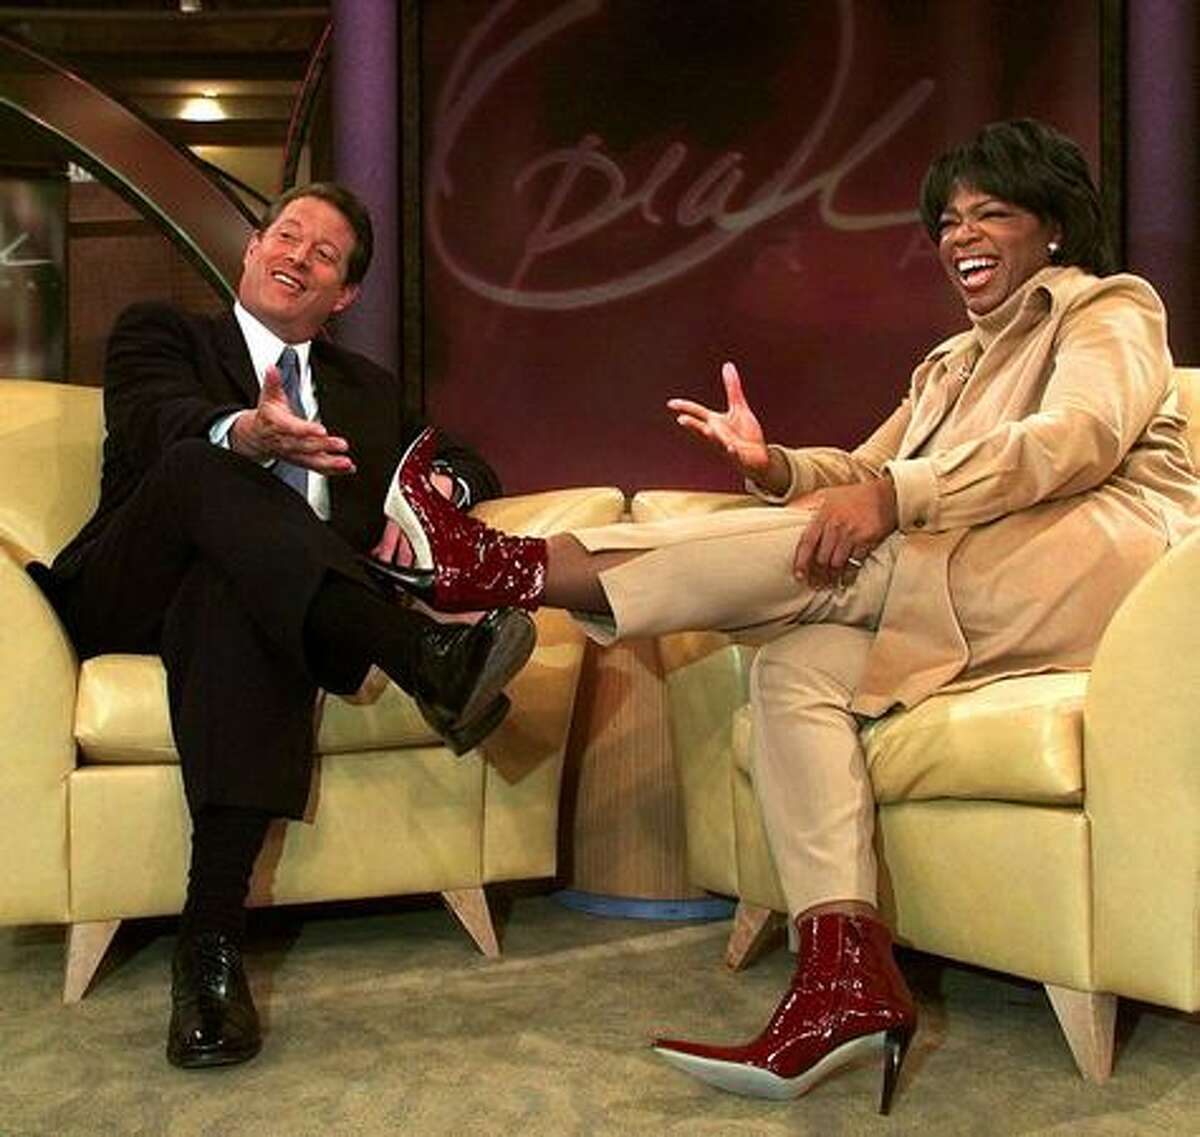 Former U.S. Vice President and (at the time) Democratic presidential candidate Al Gore (L) compares shoes as he talks with US talk show host Oprah Winfrey just after he appeared on her show in Chicago, Illinois, September 11, 2000.